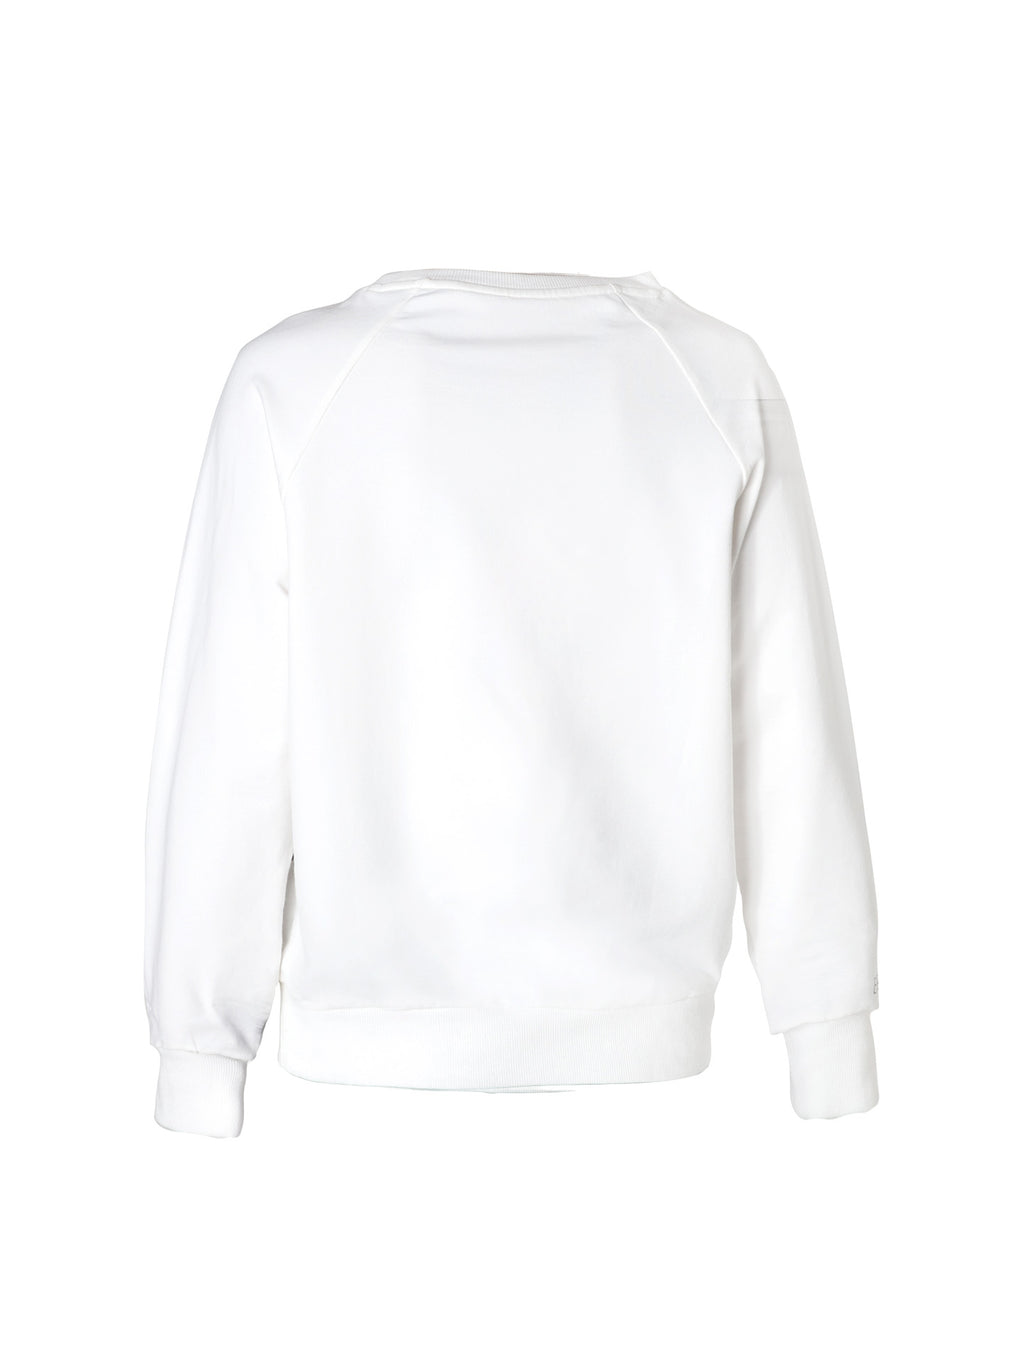 Women's BEST Sweatshirt (right)